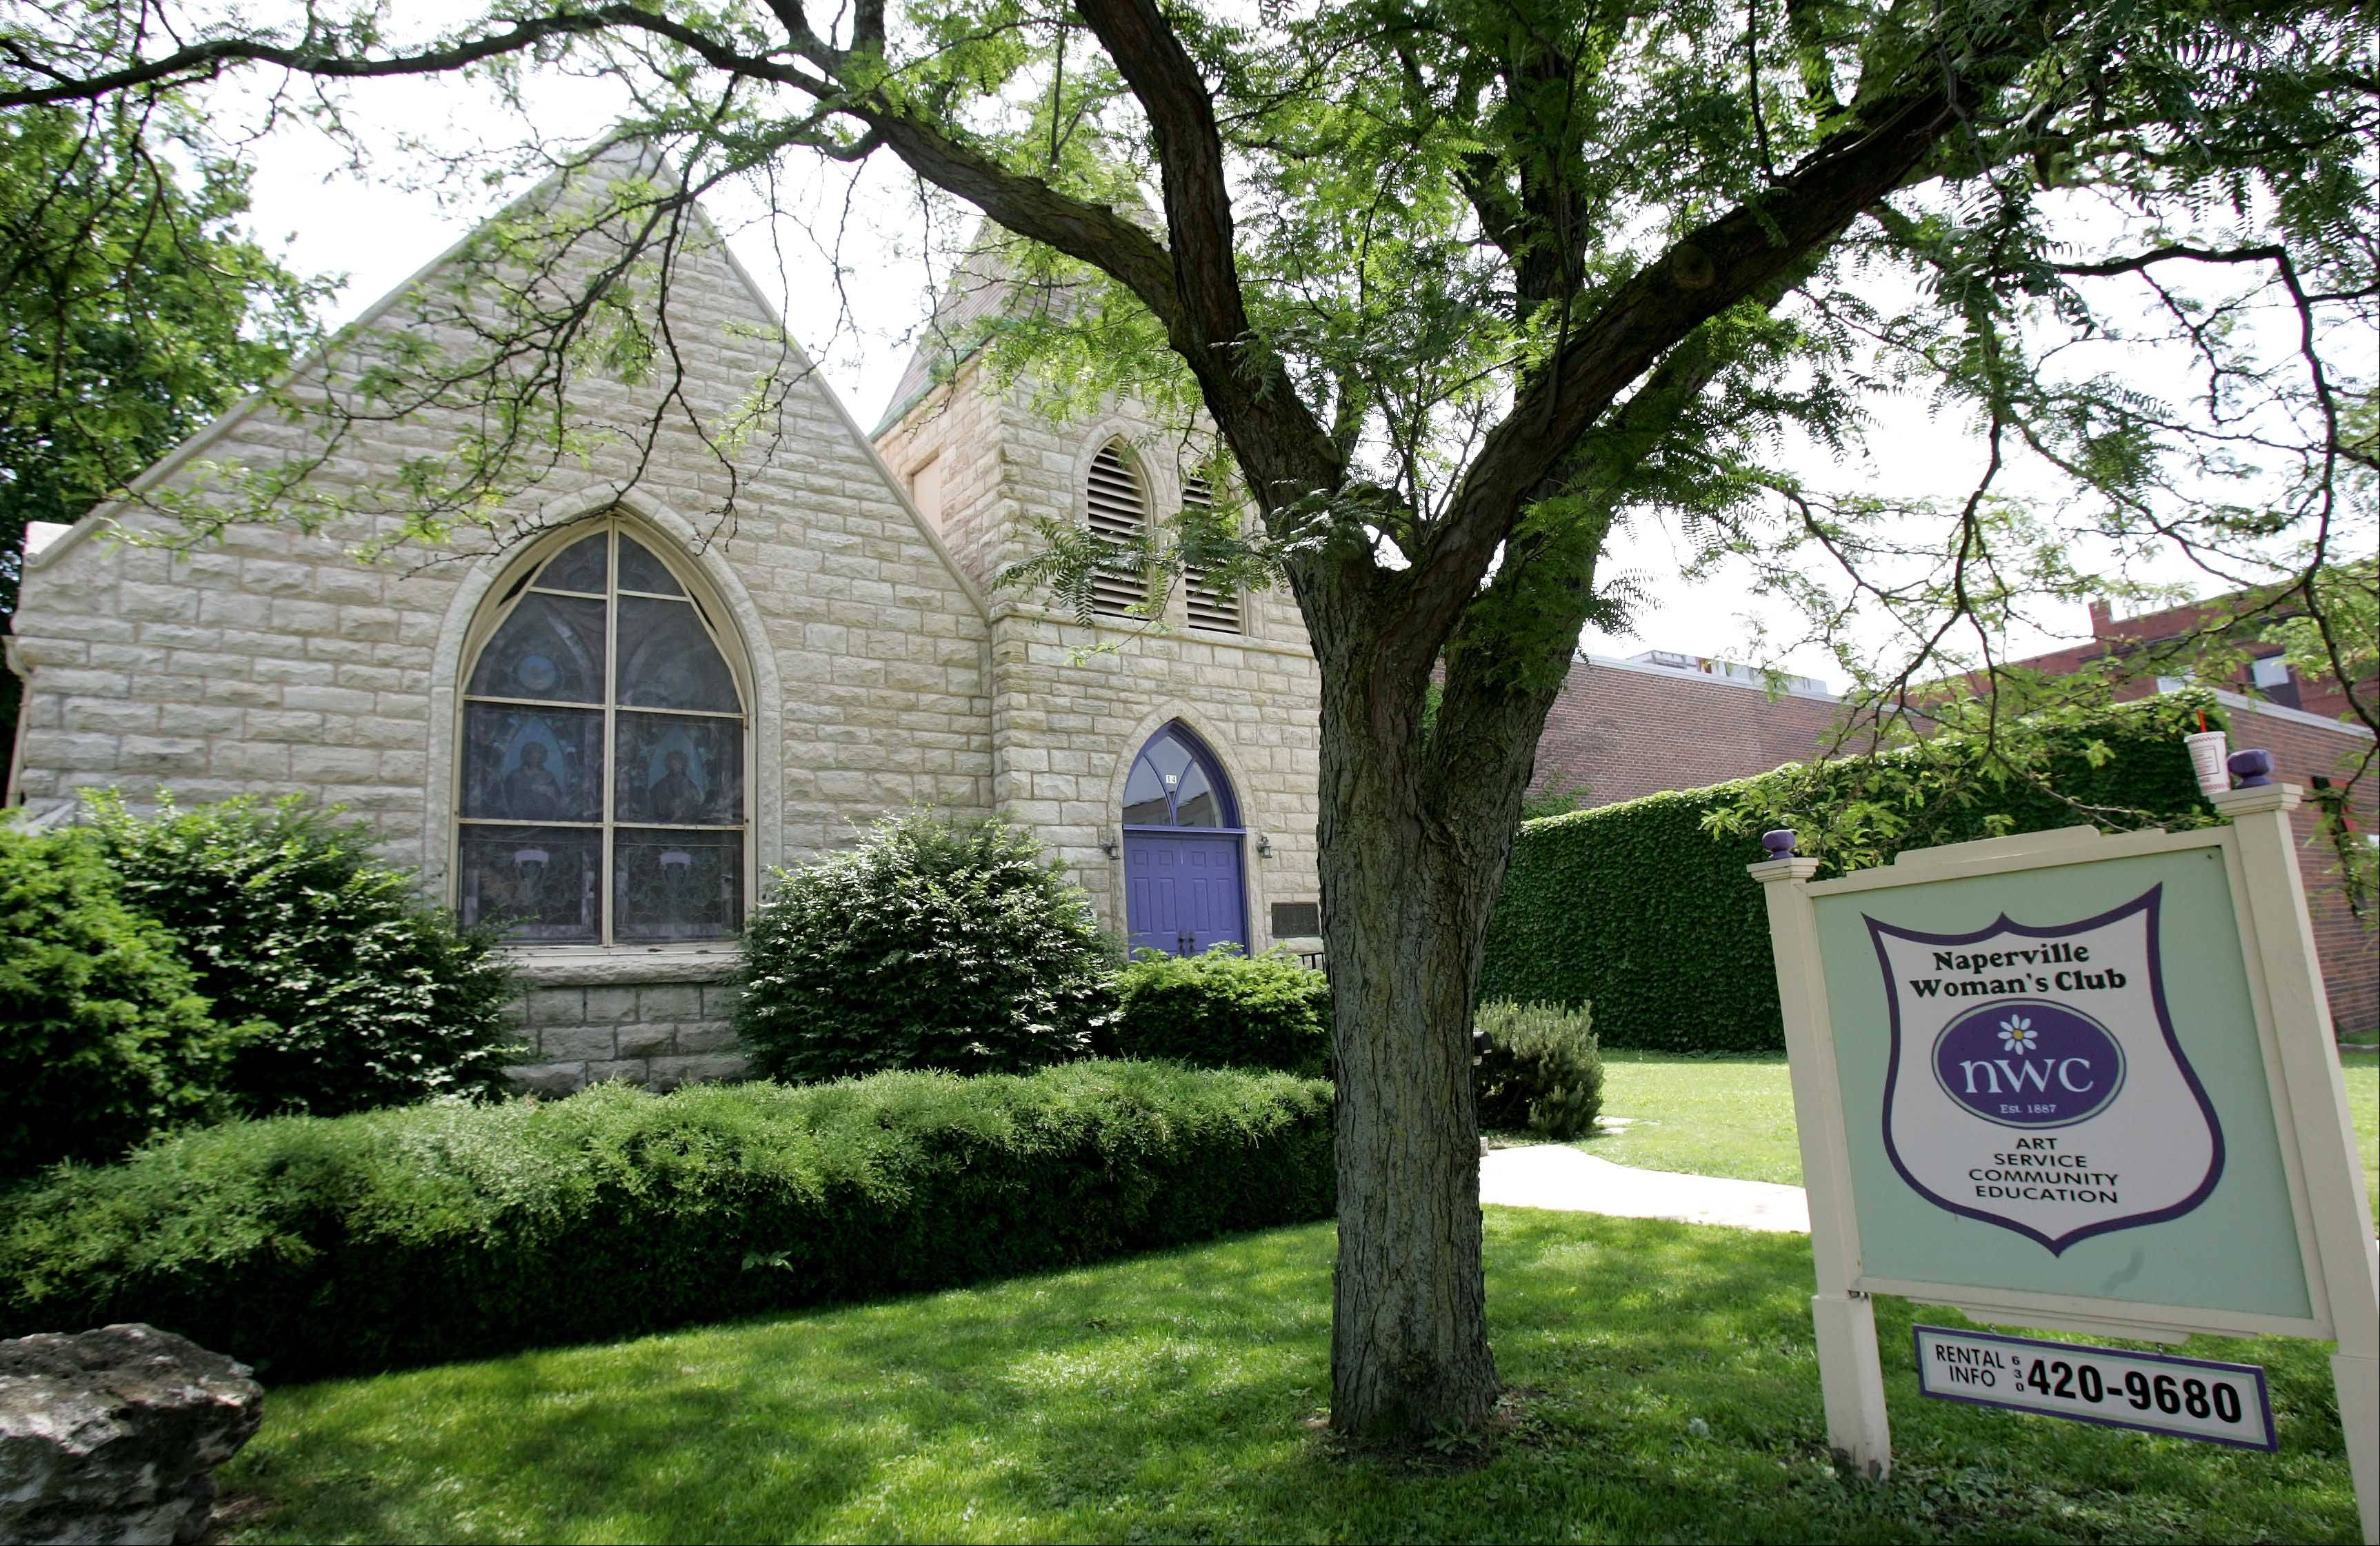 Woman's club racing to protect Naperville landmark